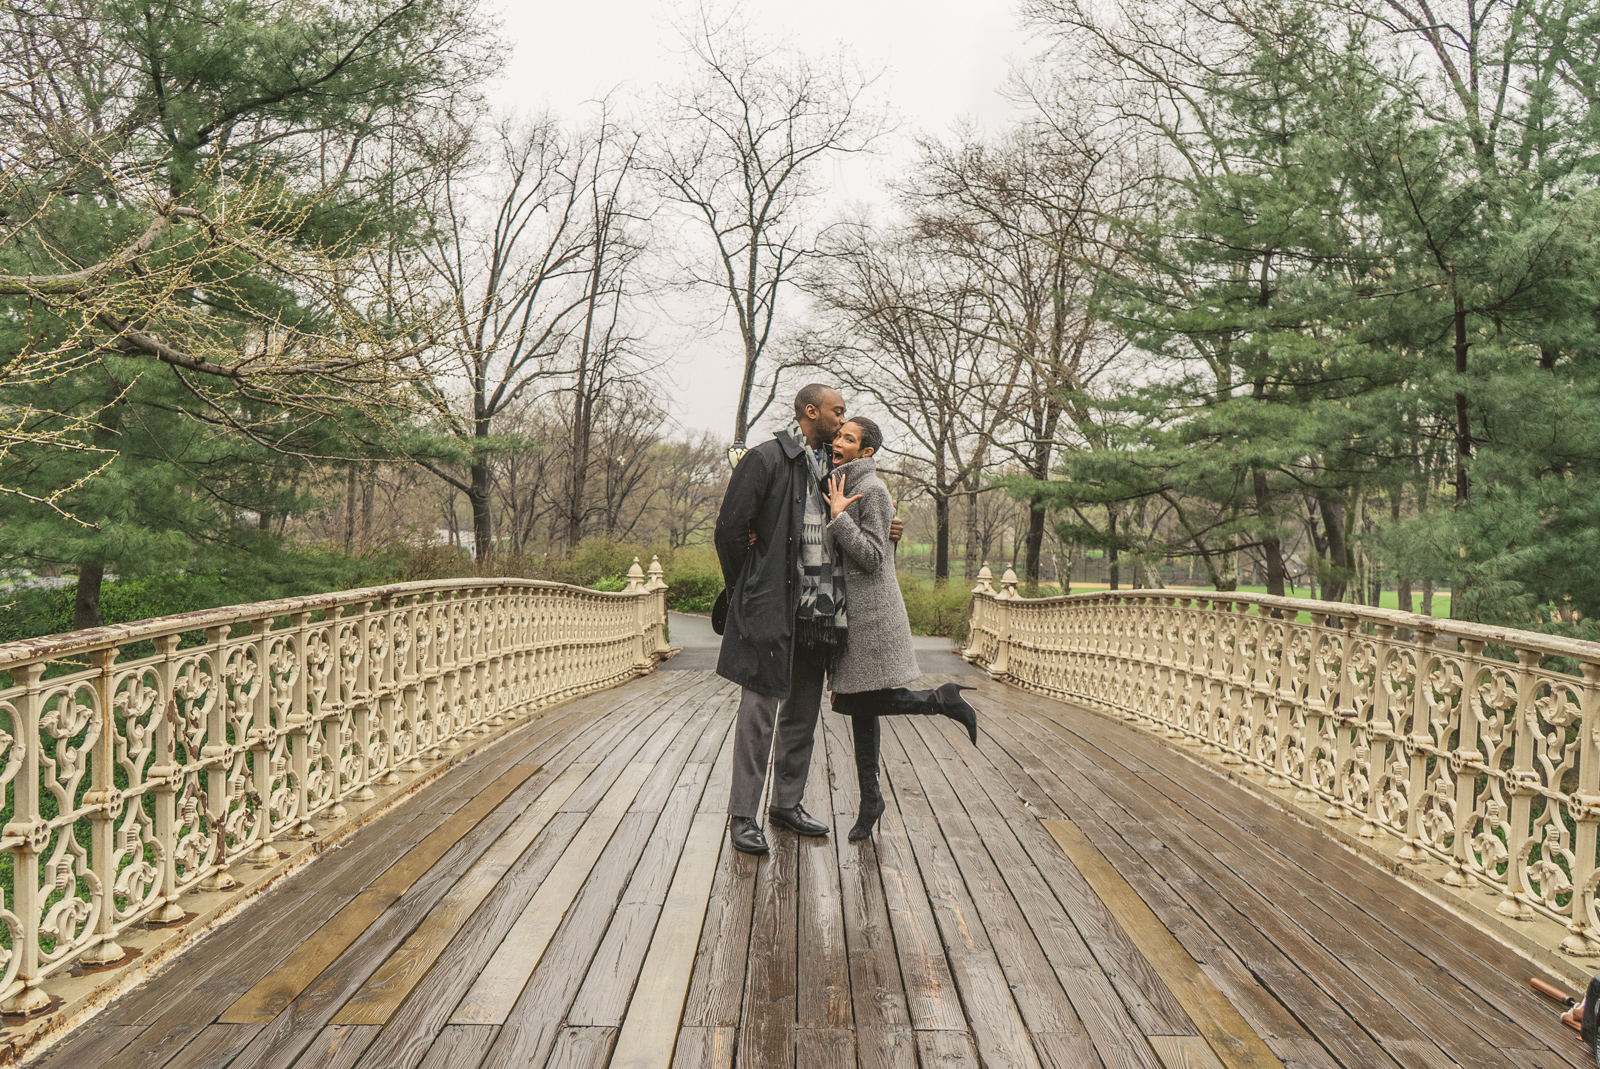 Photo 9 Pine Bank bridge Central Park Marriage Proposal | VladLeto